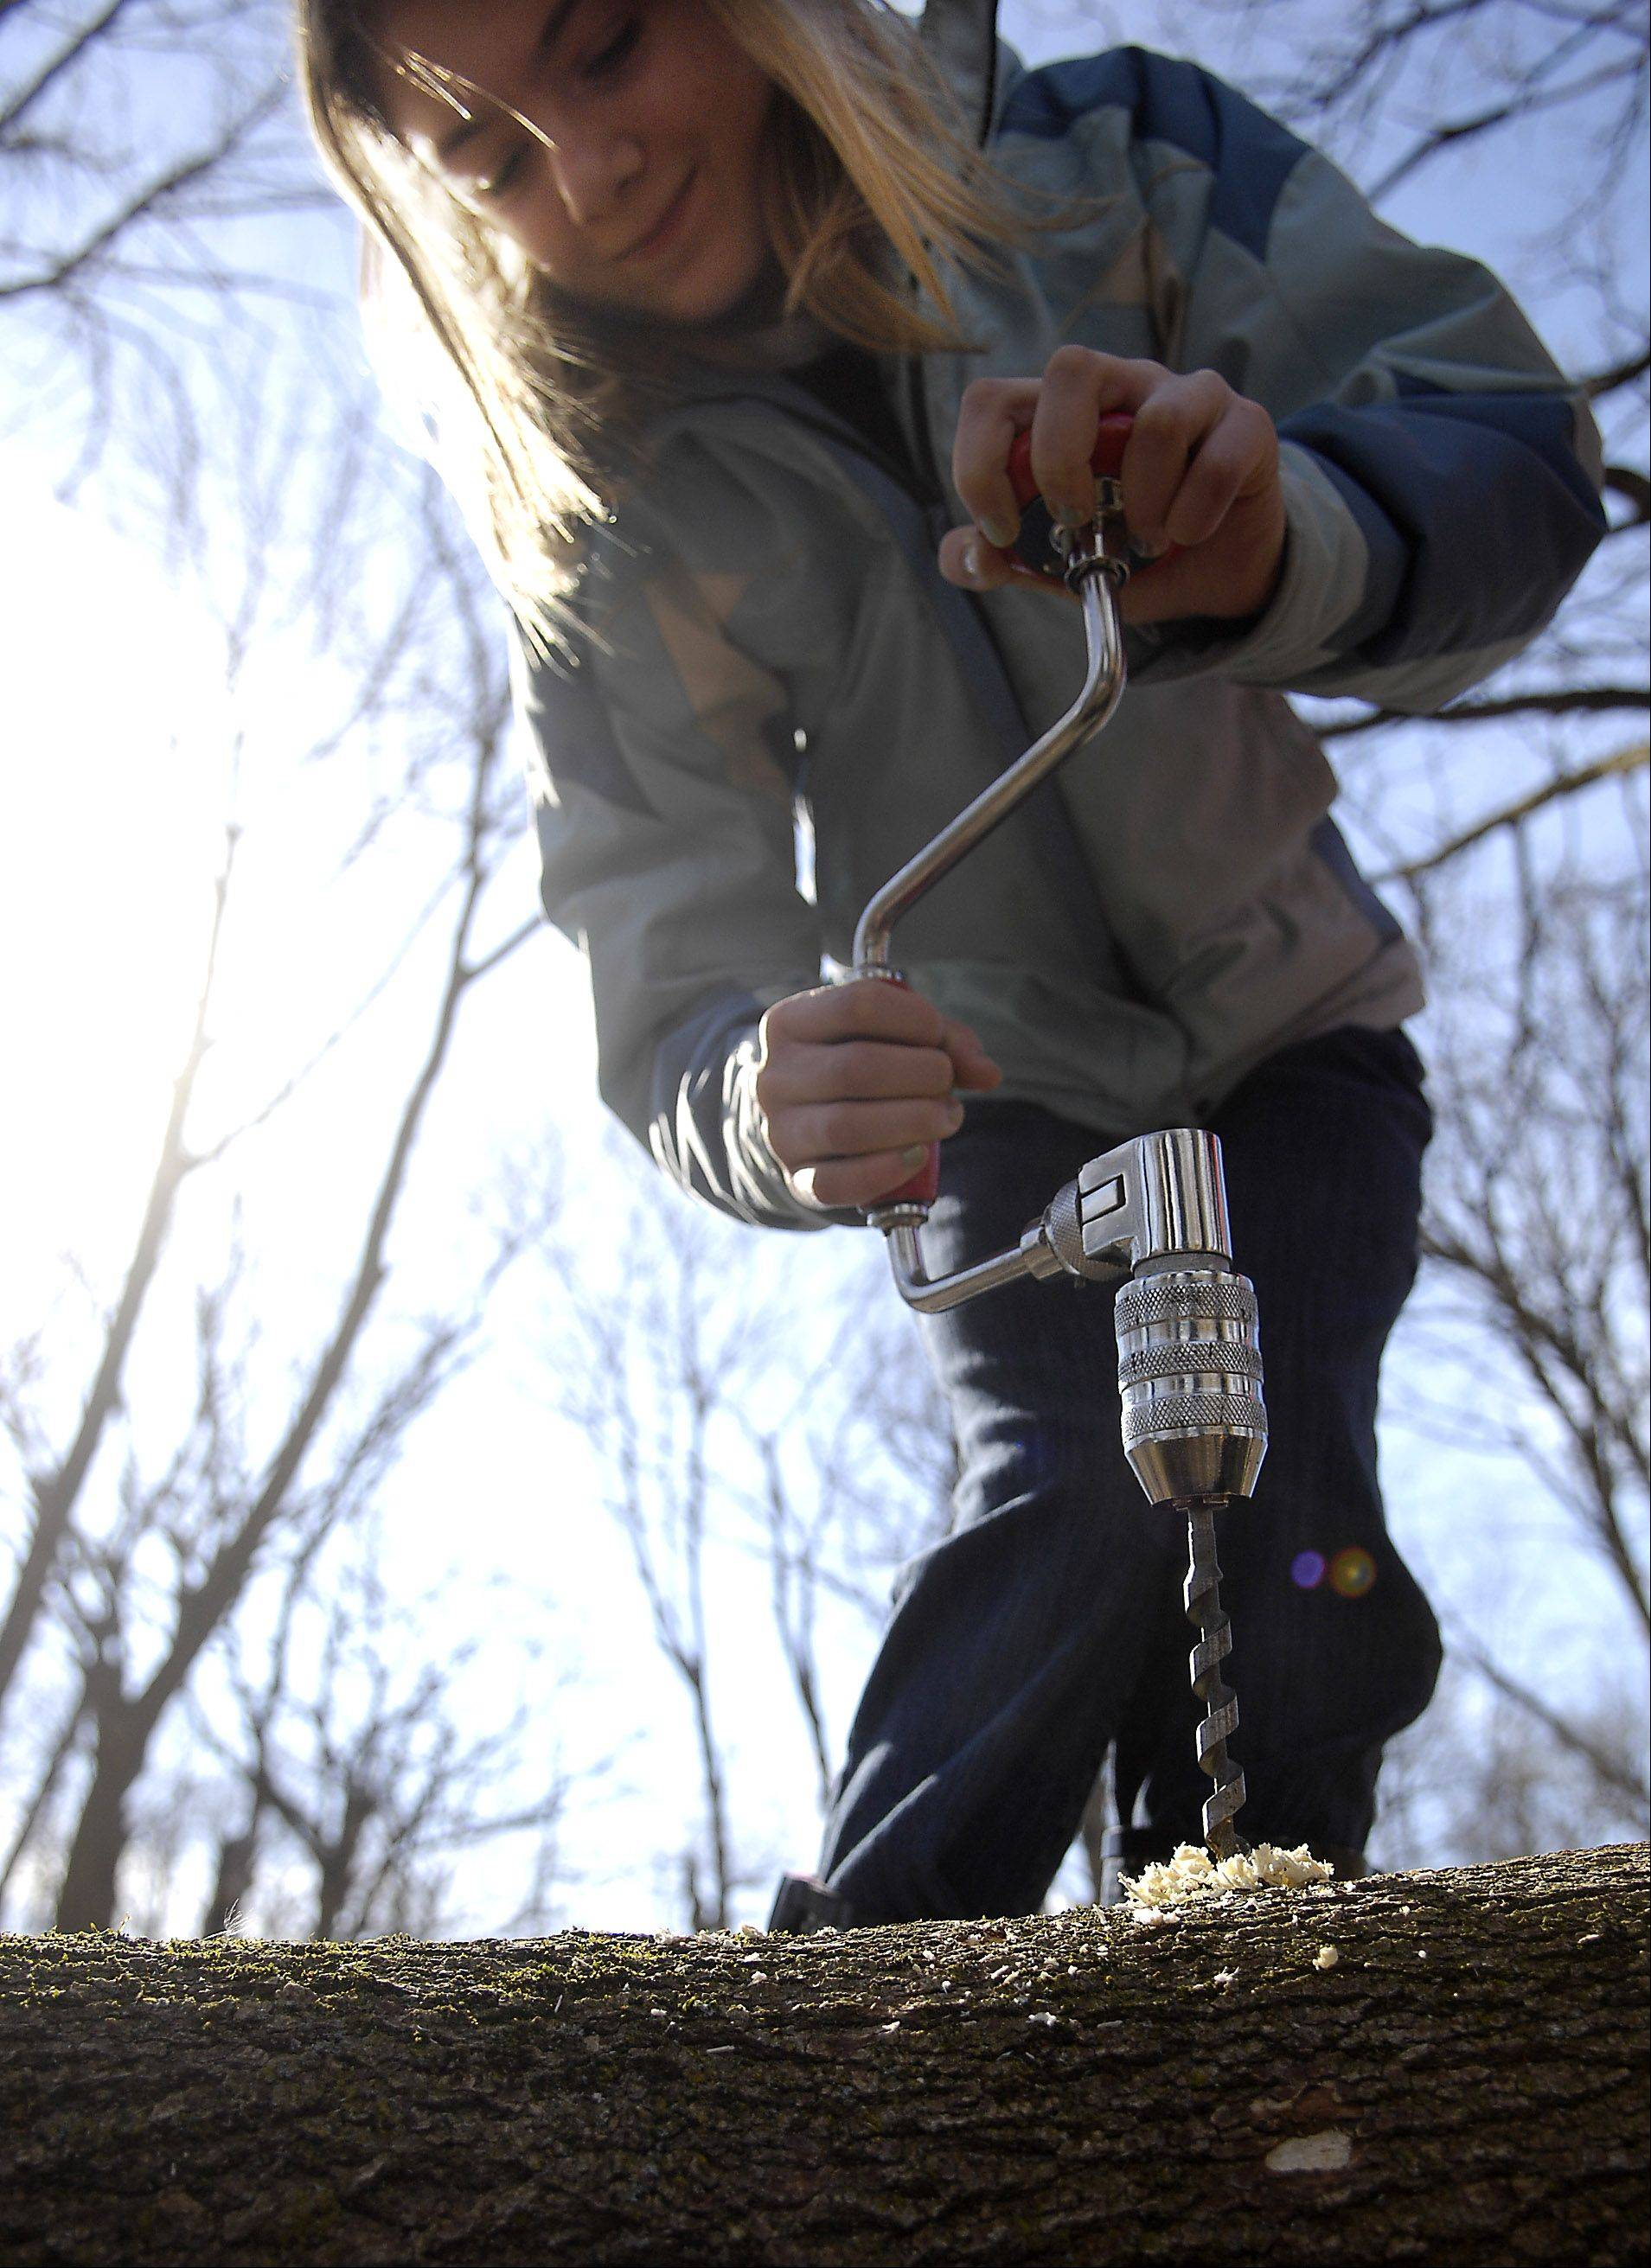 Sarah Henry, 11, of Batavia takes her turn practicing with a hand drill during a maple sugaring program for home-schooled kids at Brewster Creek Forest Preserve in St. Charles.